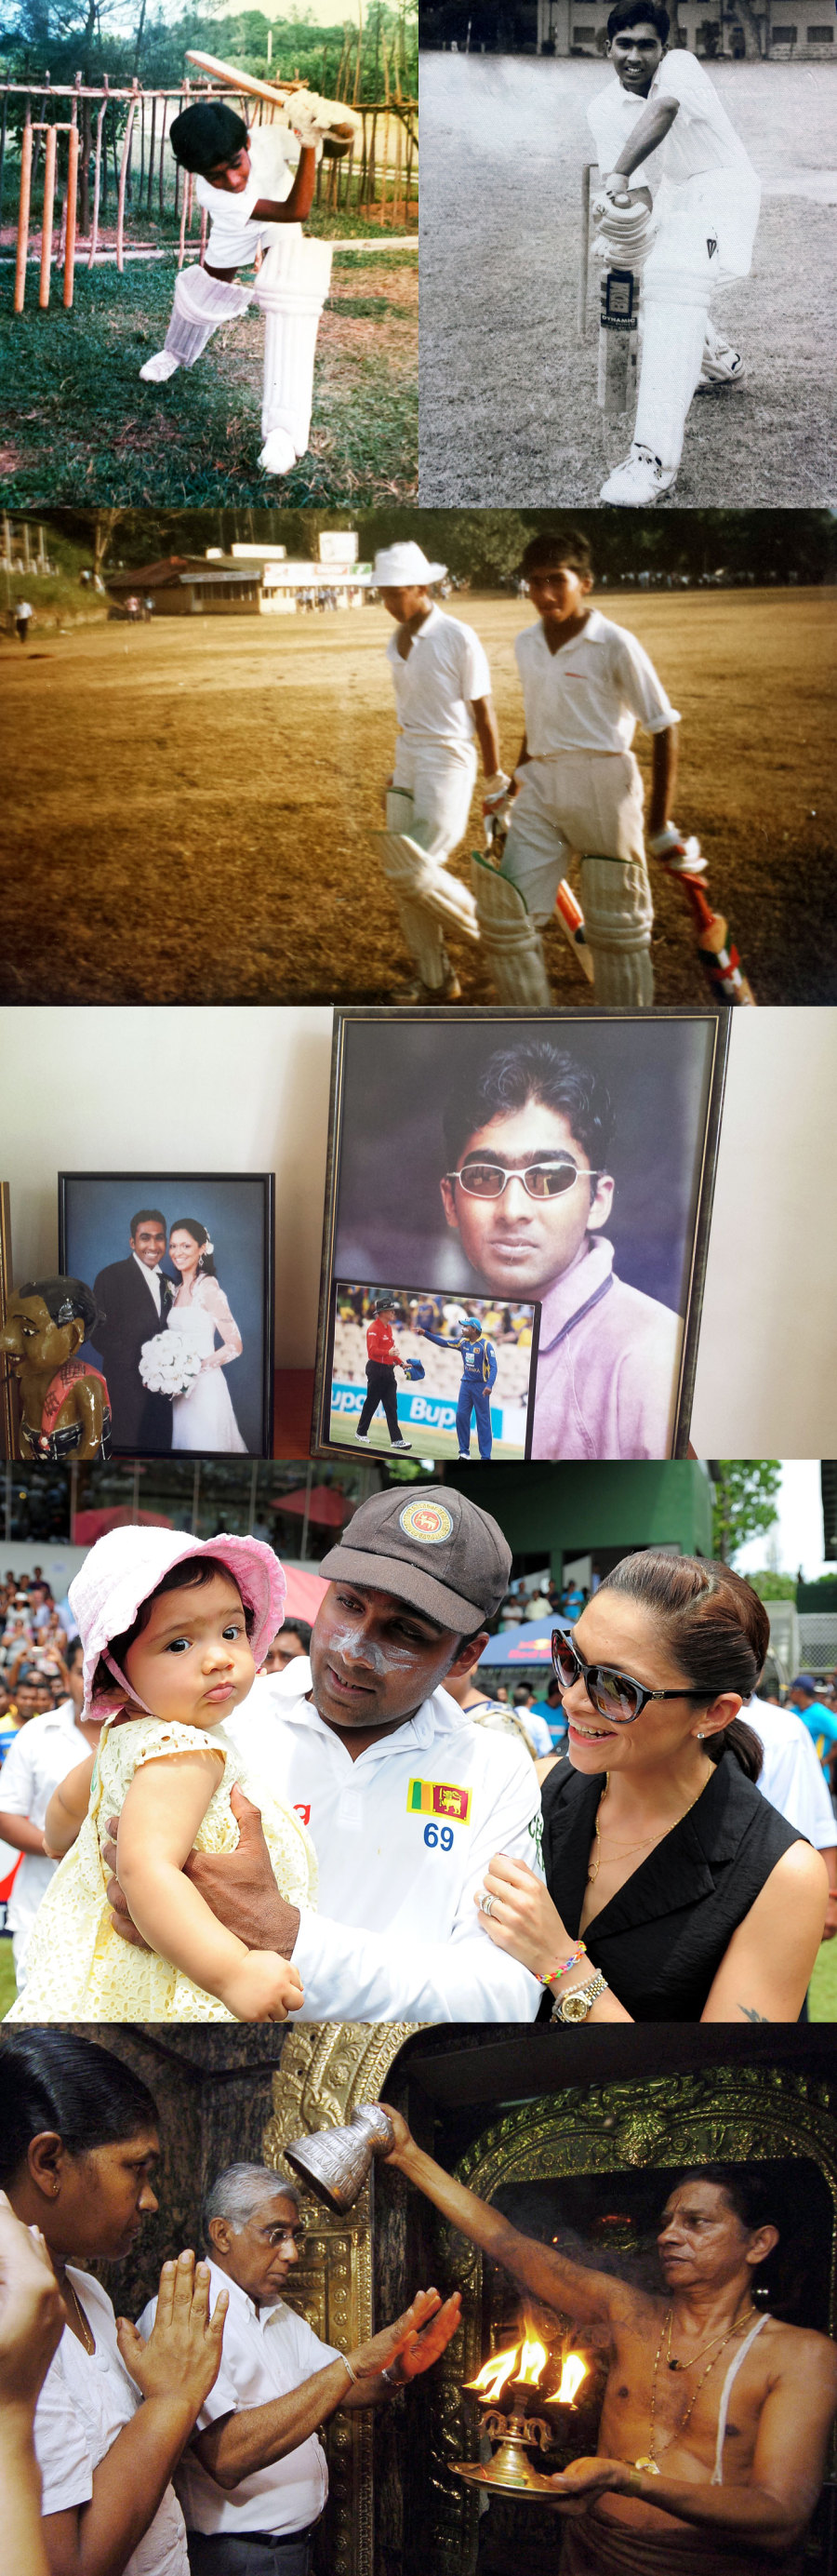 Family album: young Mahela at play; with wife Christina and baby daughter; his parents at a temple